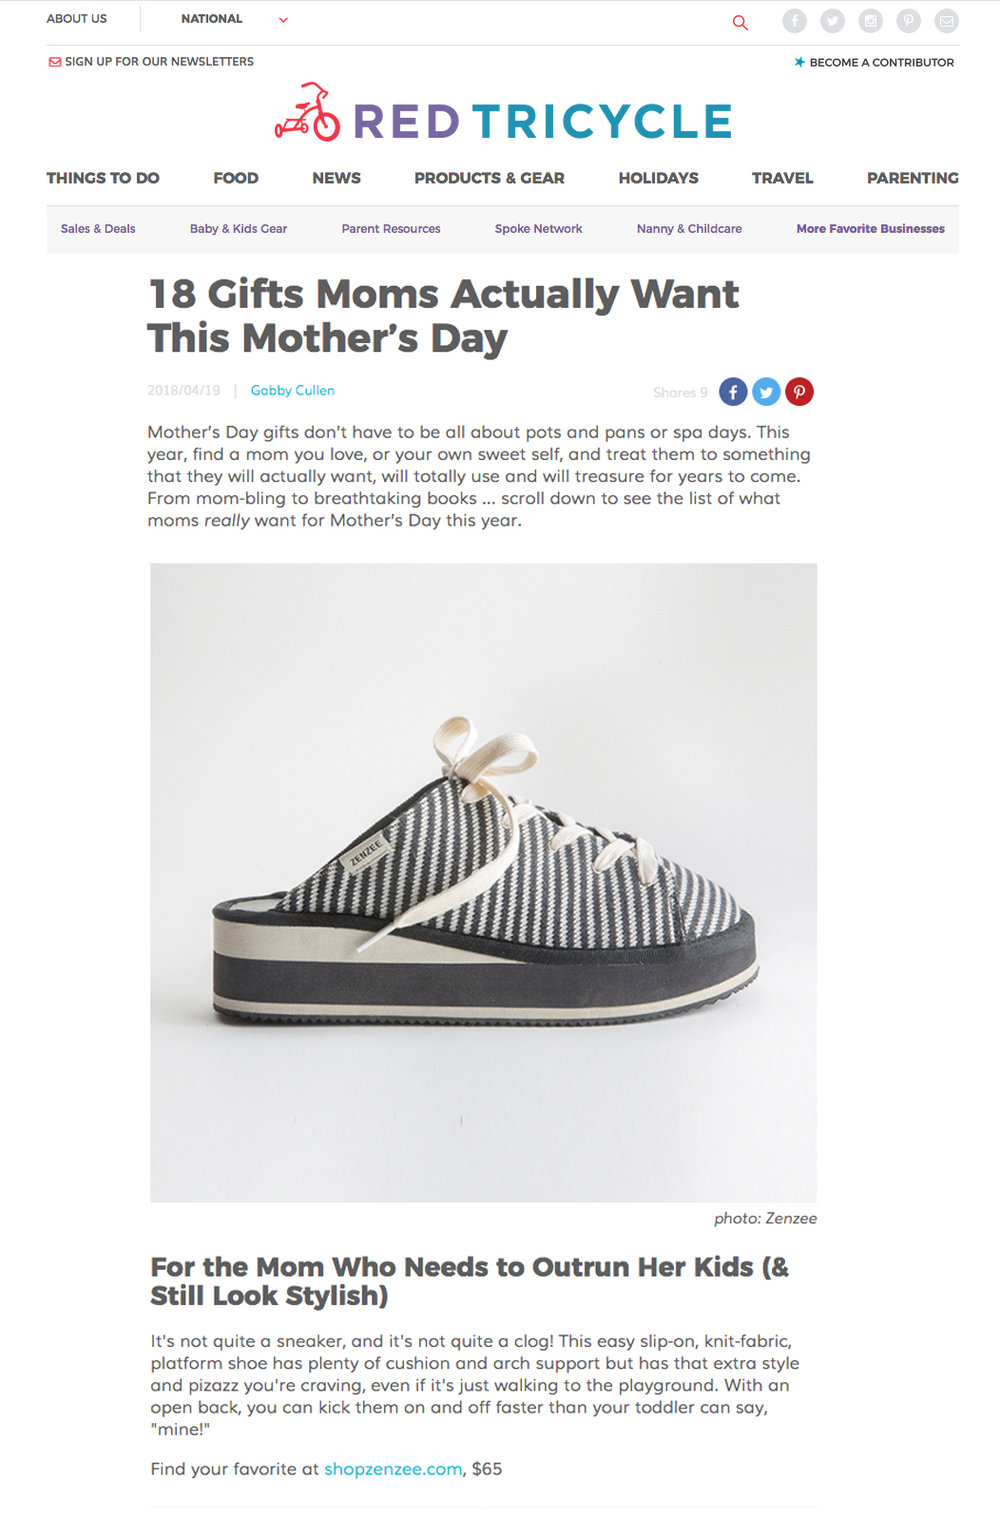 Zenzee Knit Kicks featured in REd Tricycle's Mothers Day Gift Guide